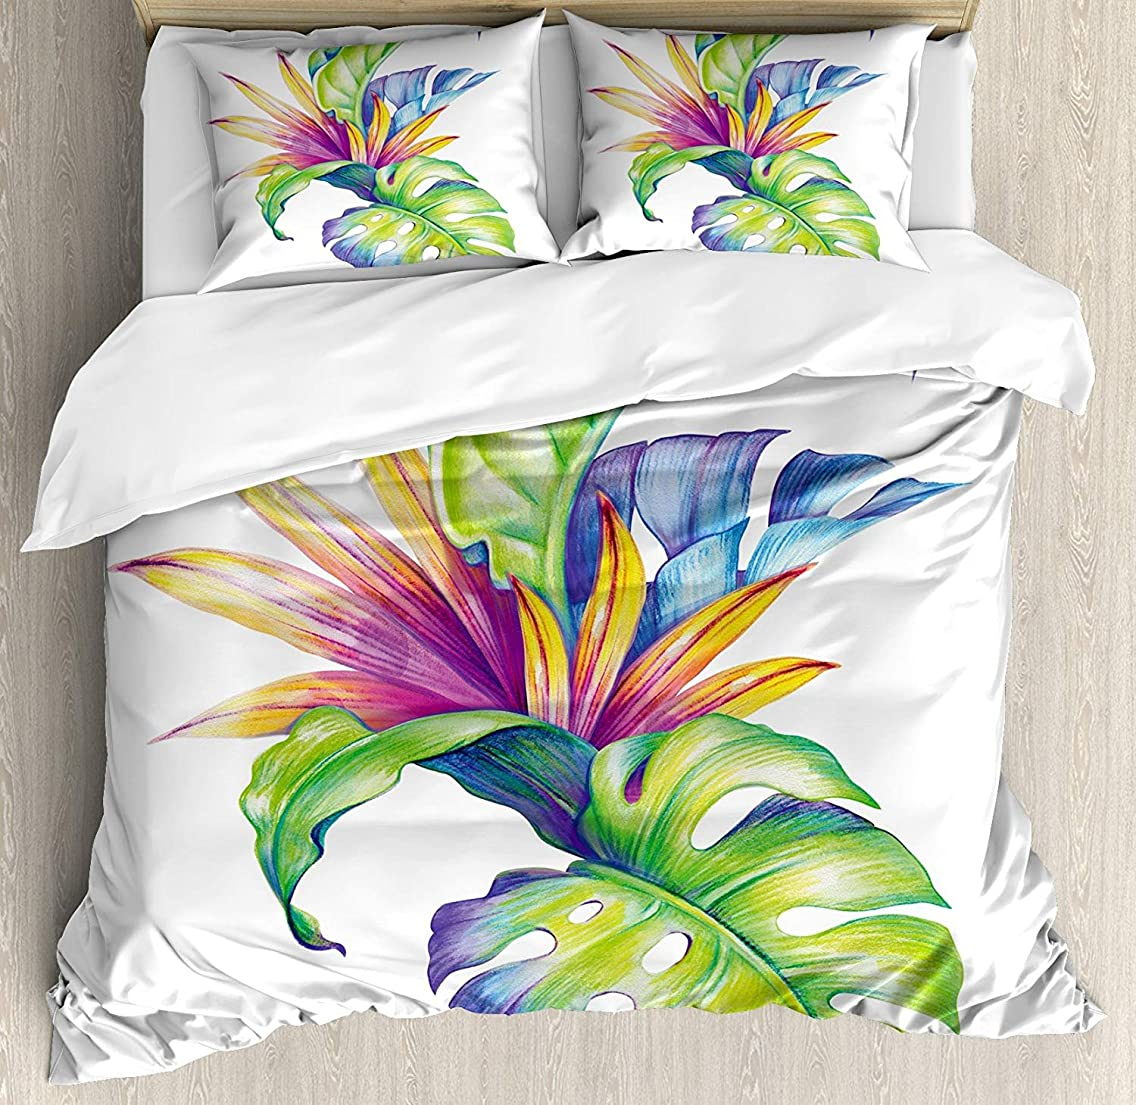 VCFUN Family Comfort Bed Sheet Plant Tropical Leaves Monstera with Abstract Color Scheme Hawaiian Floral Elements, 4 Piece Bedding Sets Duvet Cover Oversized Bedspread, Queen Size